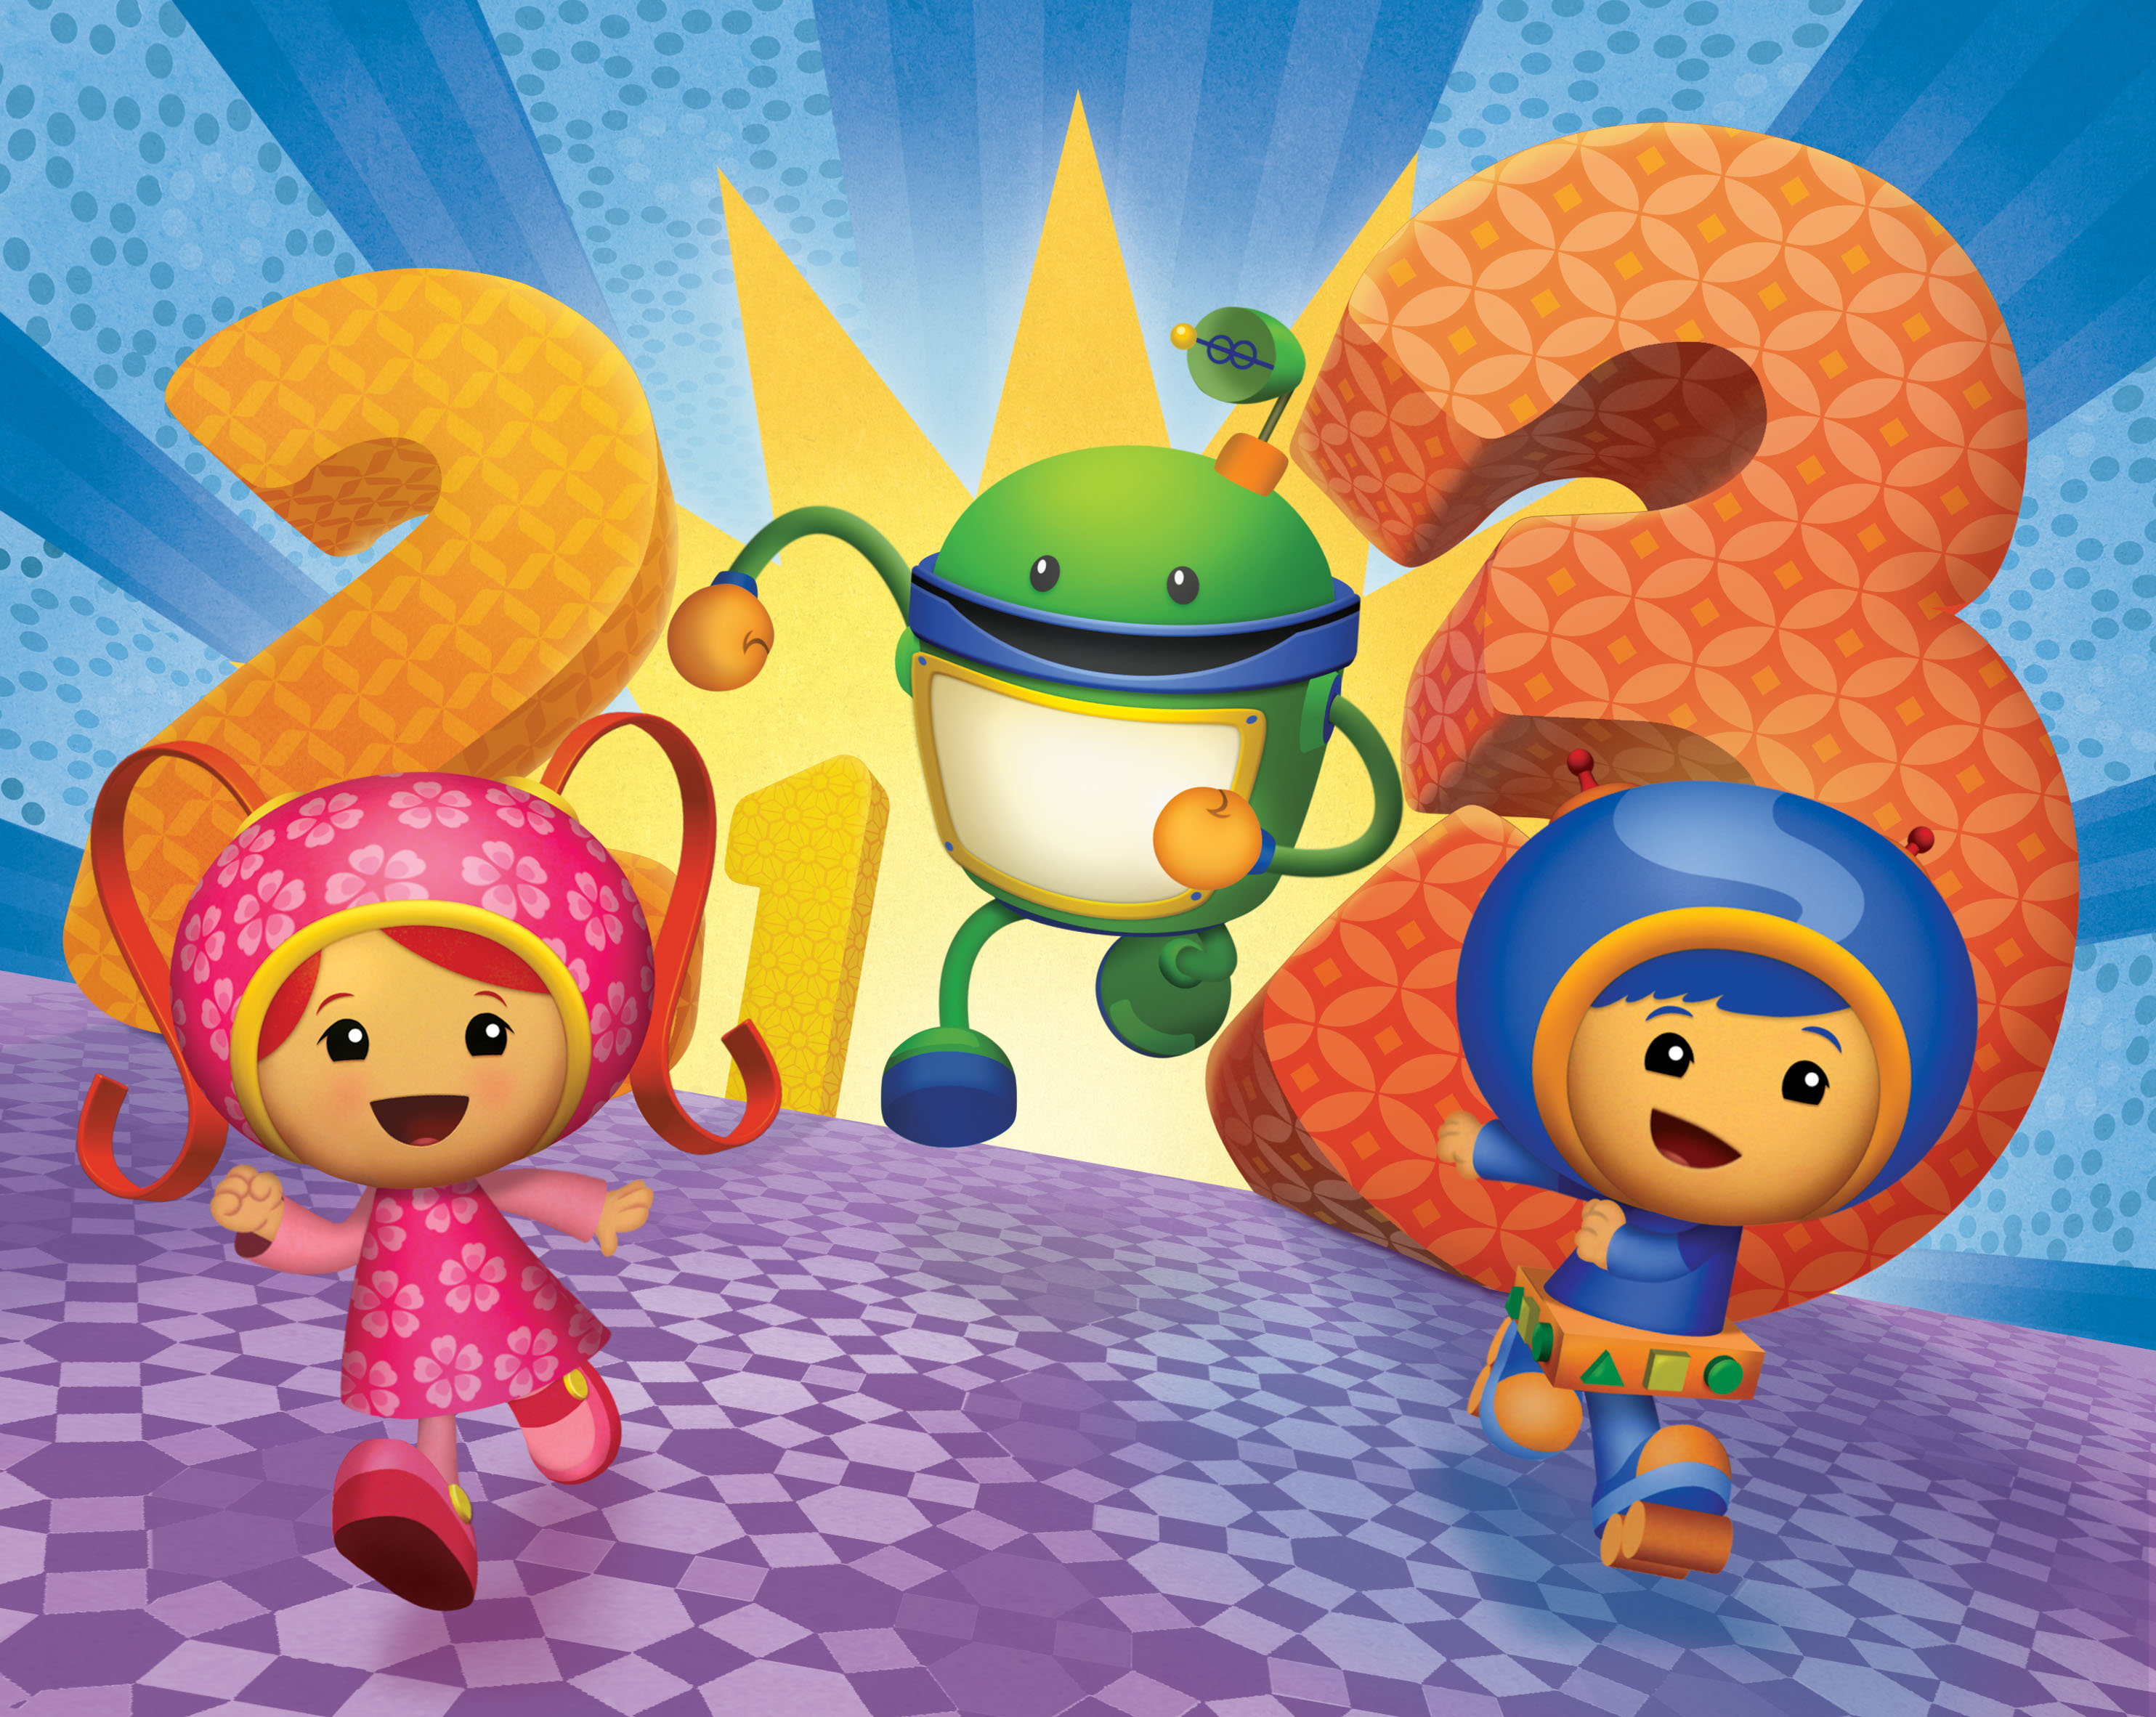 Old cbeebies shows